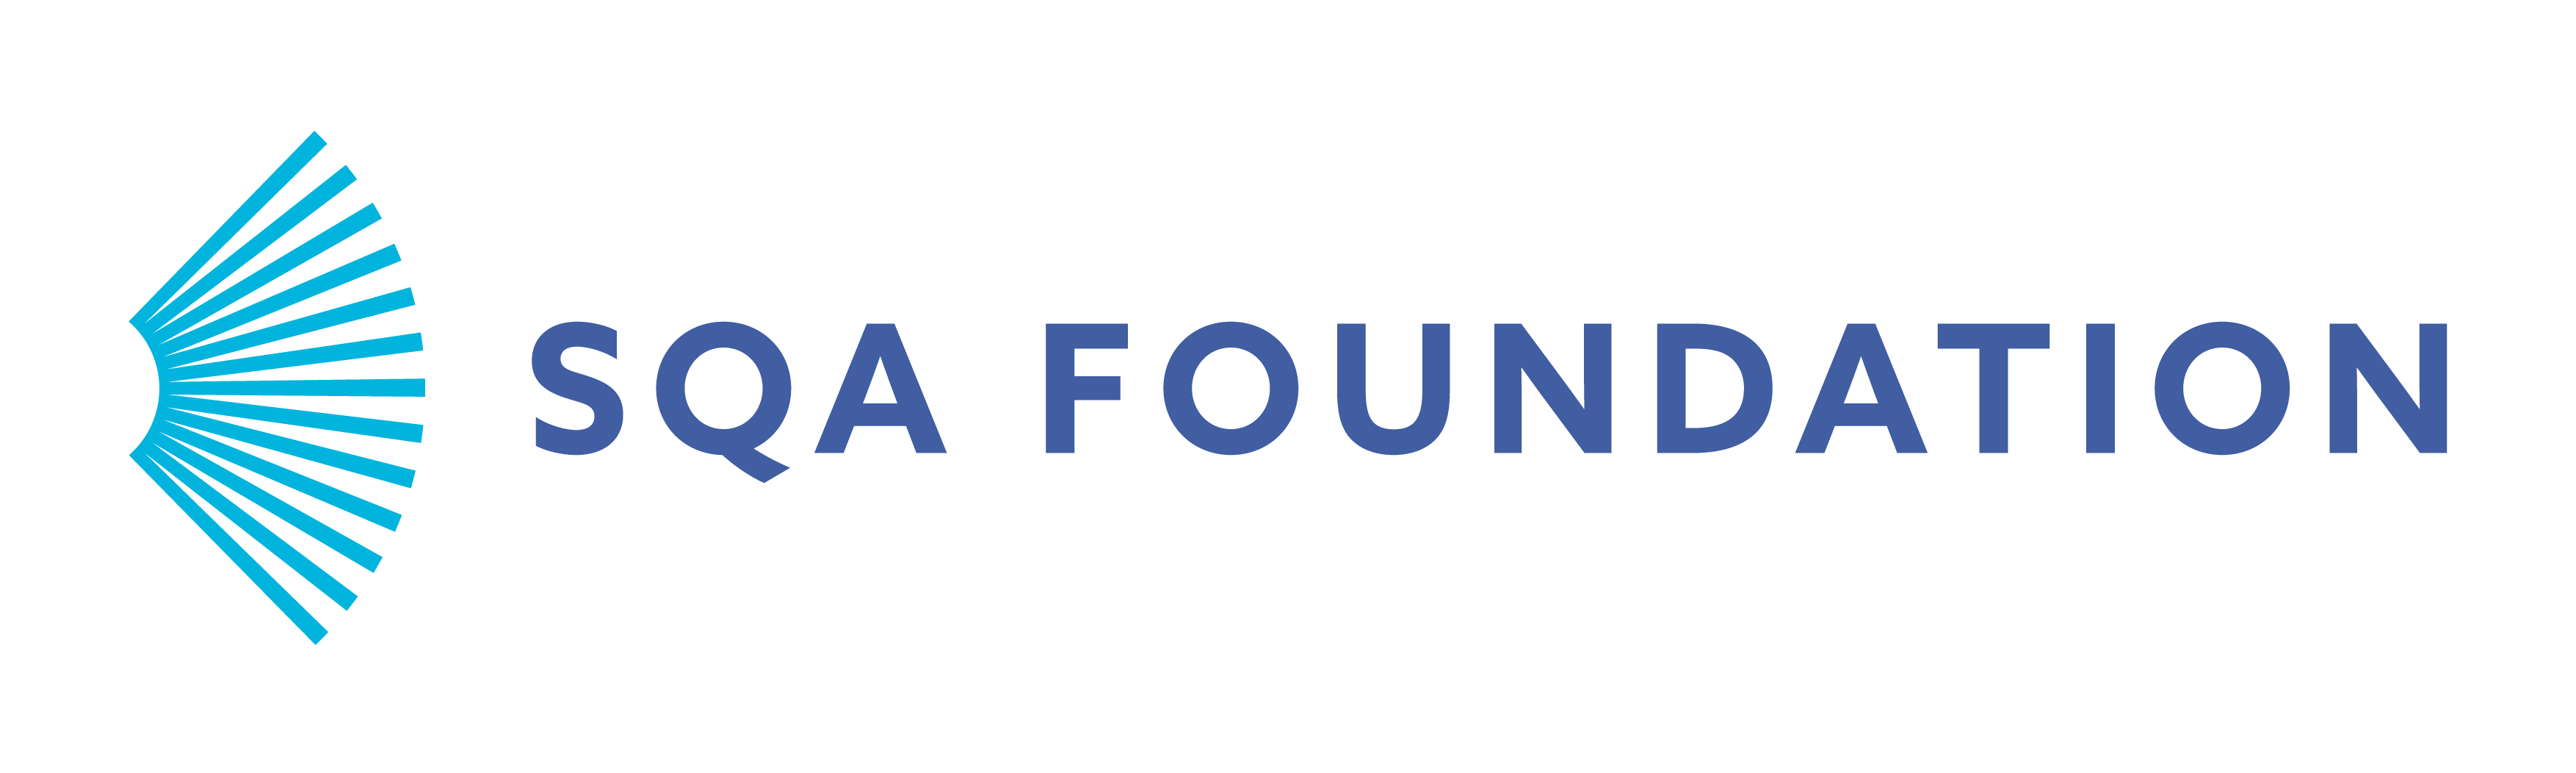 Sequoia Foundation